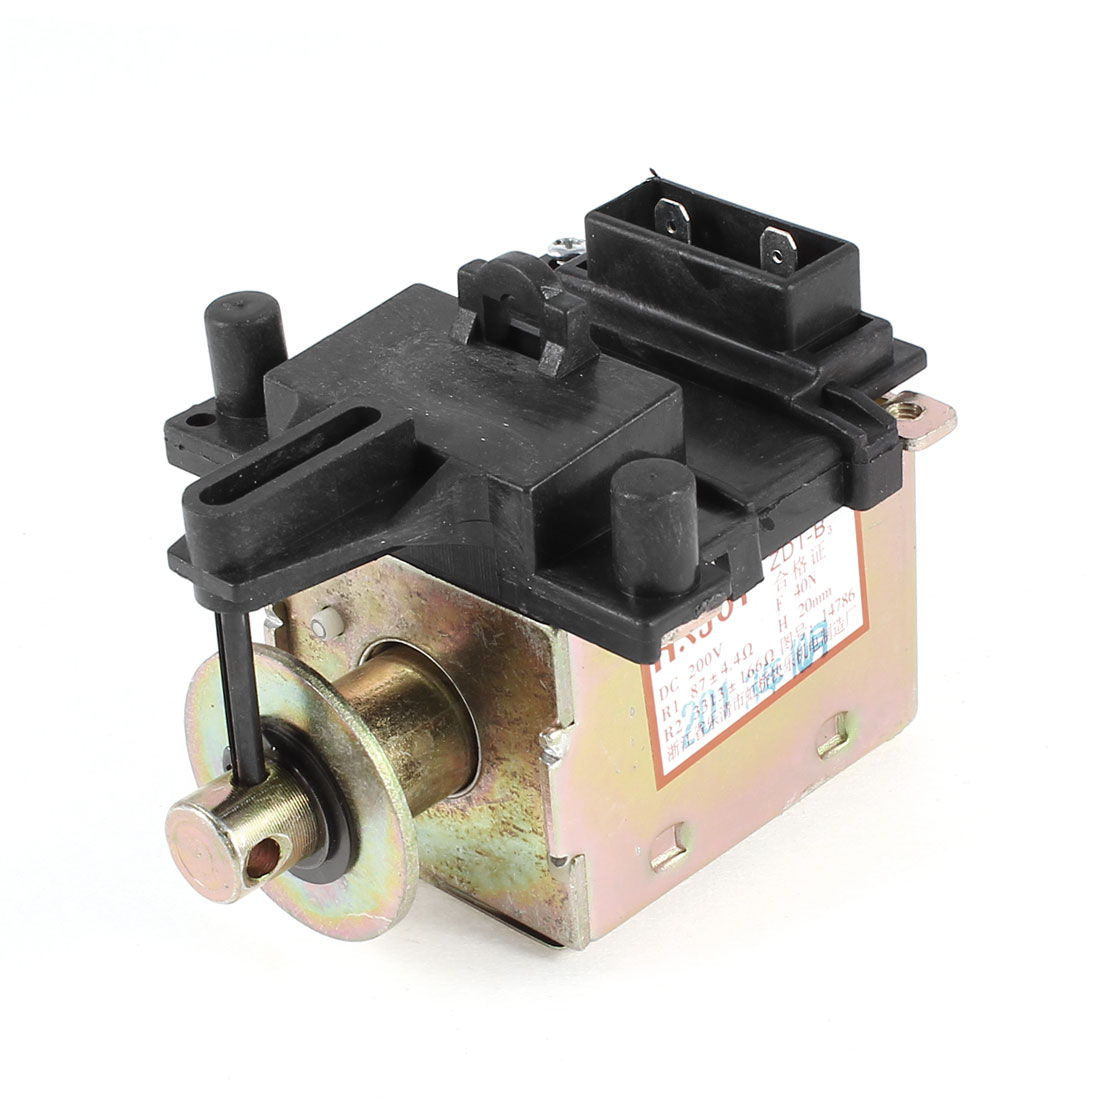 DC 200V 16mm Stroke Water Drain Electromagnetic Valve for Washing Machine